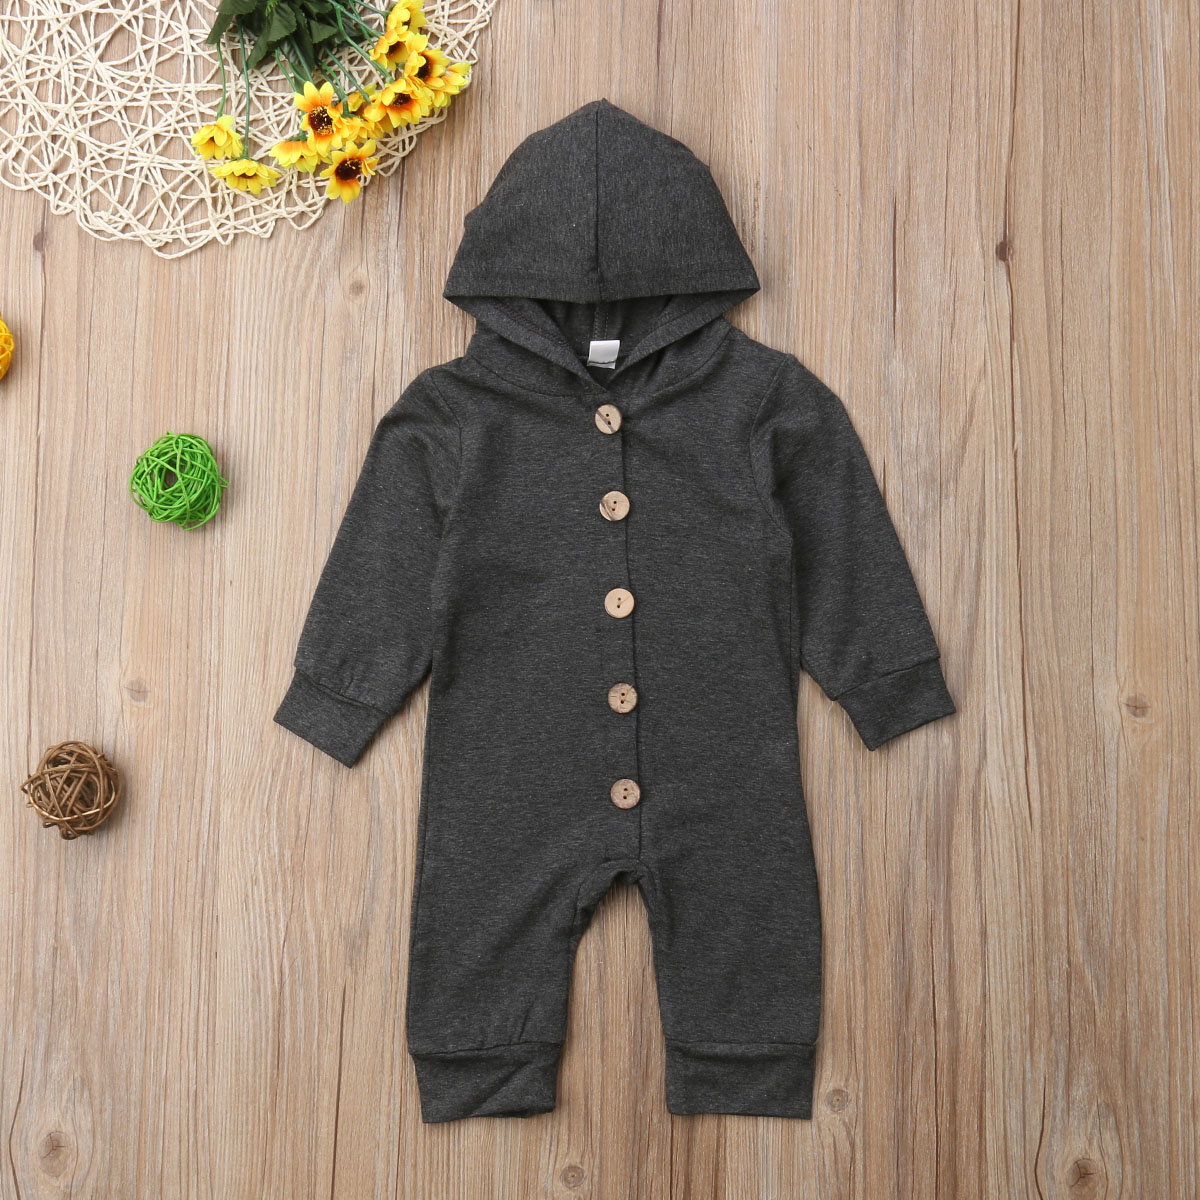 HTB1ScmDXOYrK1Rjy0Fdq6ACvVXap Toddler Baby Clothes Hooded Long Sleeve Button Boy&Girl Kids Baby Rompers Cotton Jumpsuit New Born Baby Clothes Casual Outfit